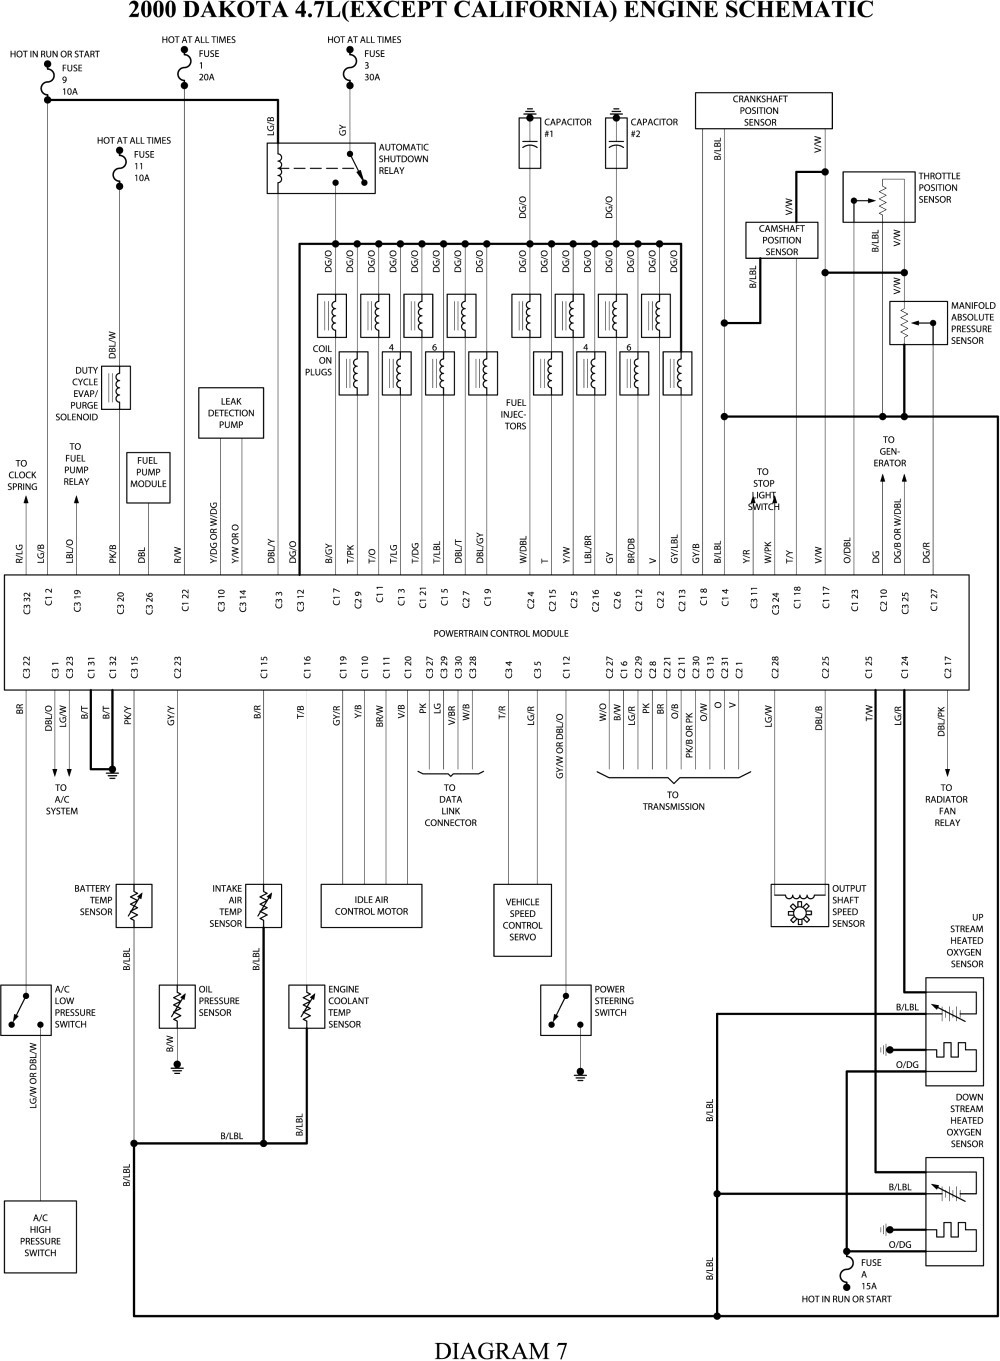 2002 Dodge Ram Tail Light Wiring Diagram | Releaseganji - Dodge Ram 1500 Trailer Wiring Diagram